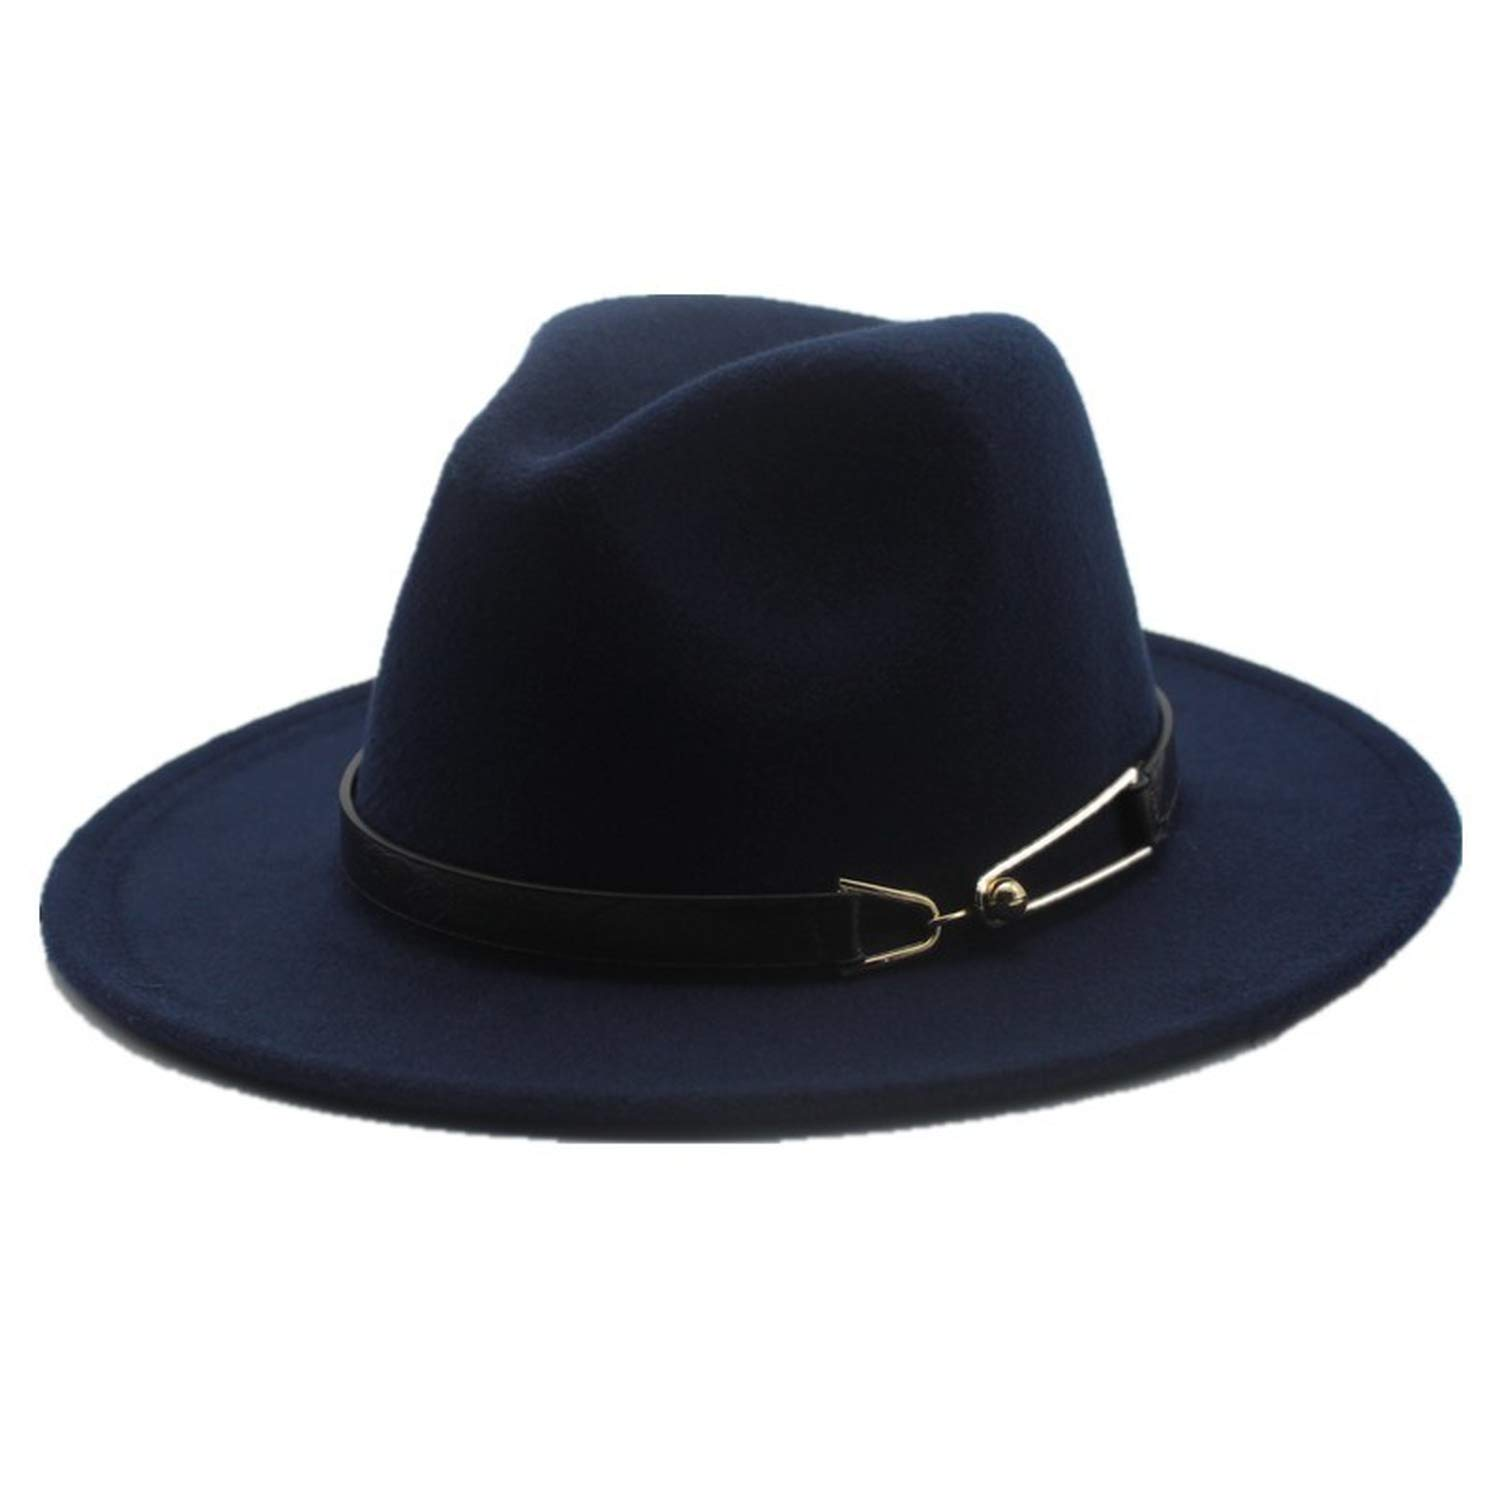 b98d01dae04 Wide Brim Autumn Female Fashion Top hat Jazz Cap Winter Fedora Hat for Men  Wool Hat at Amazon Men s Clothing store